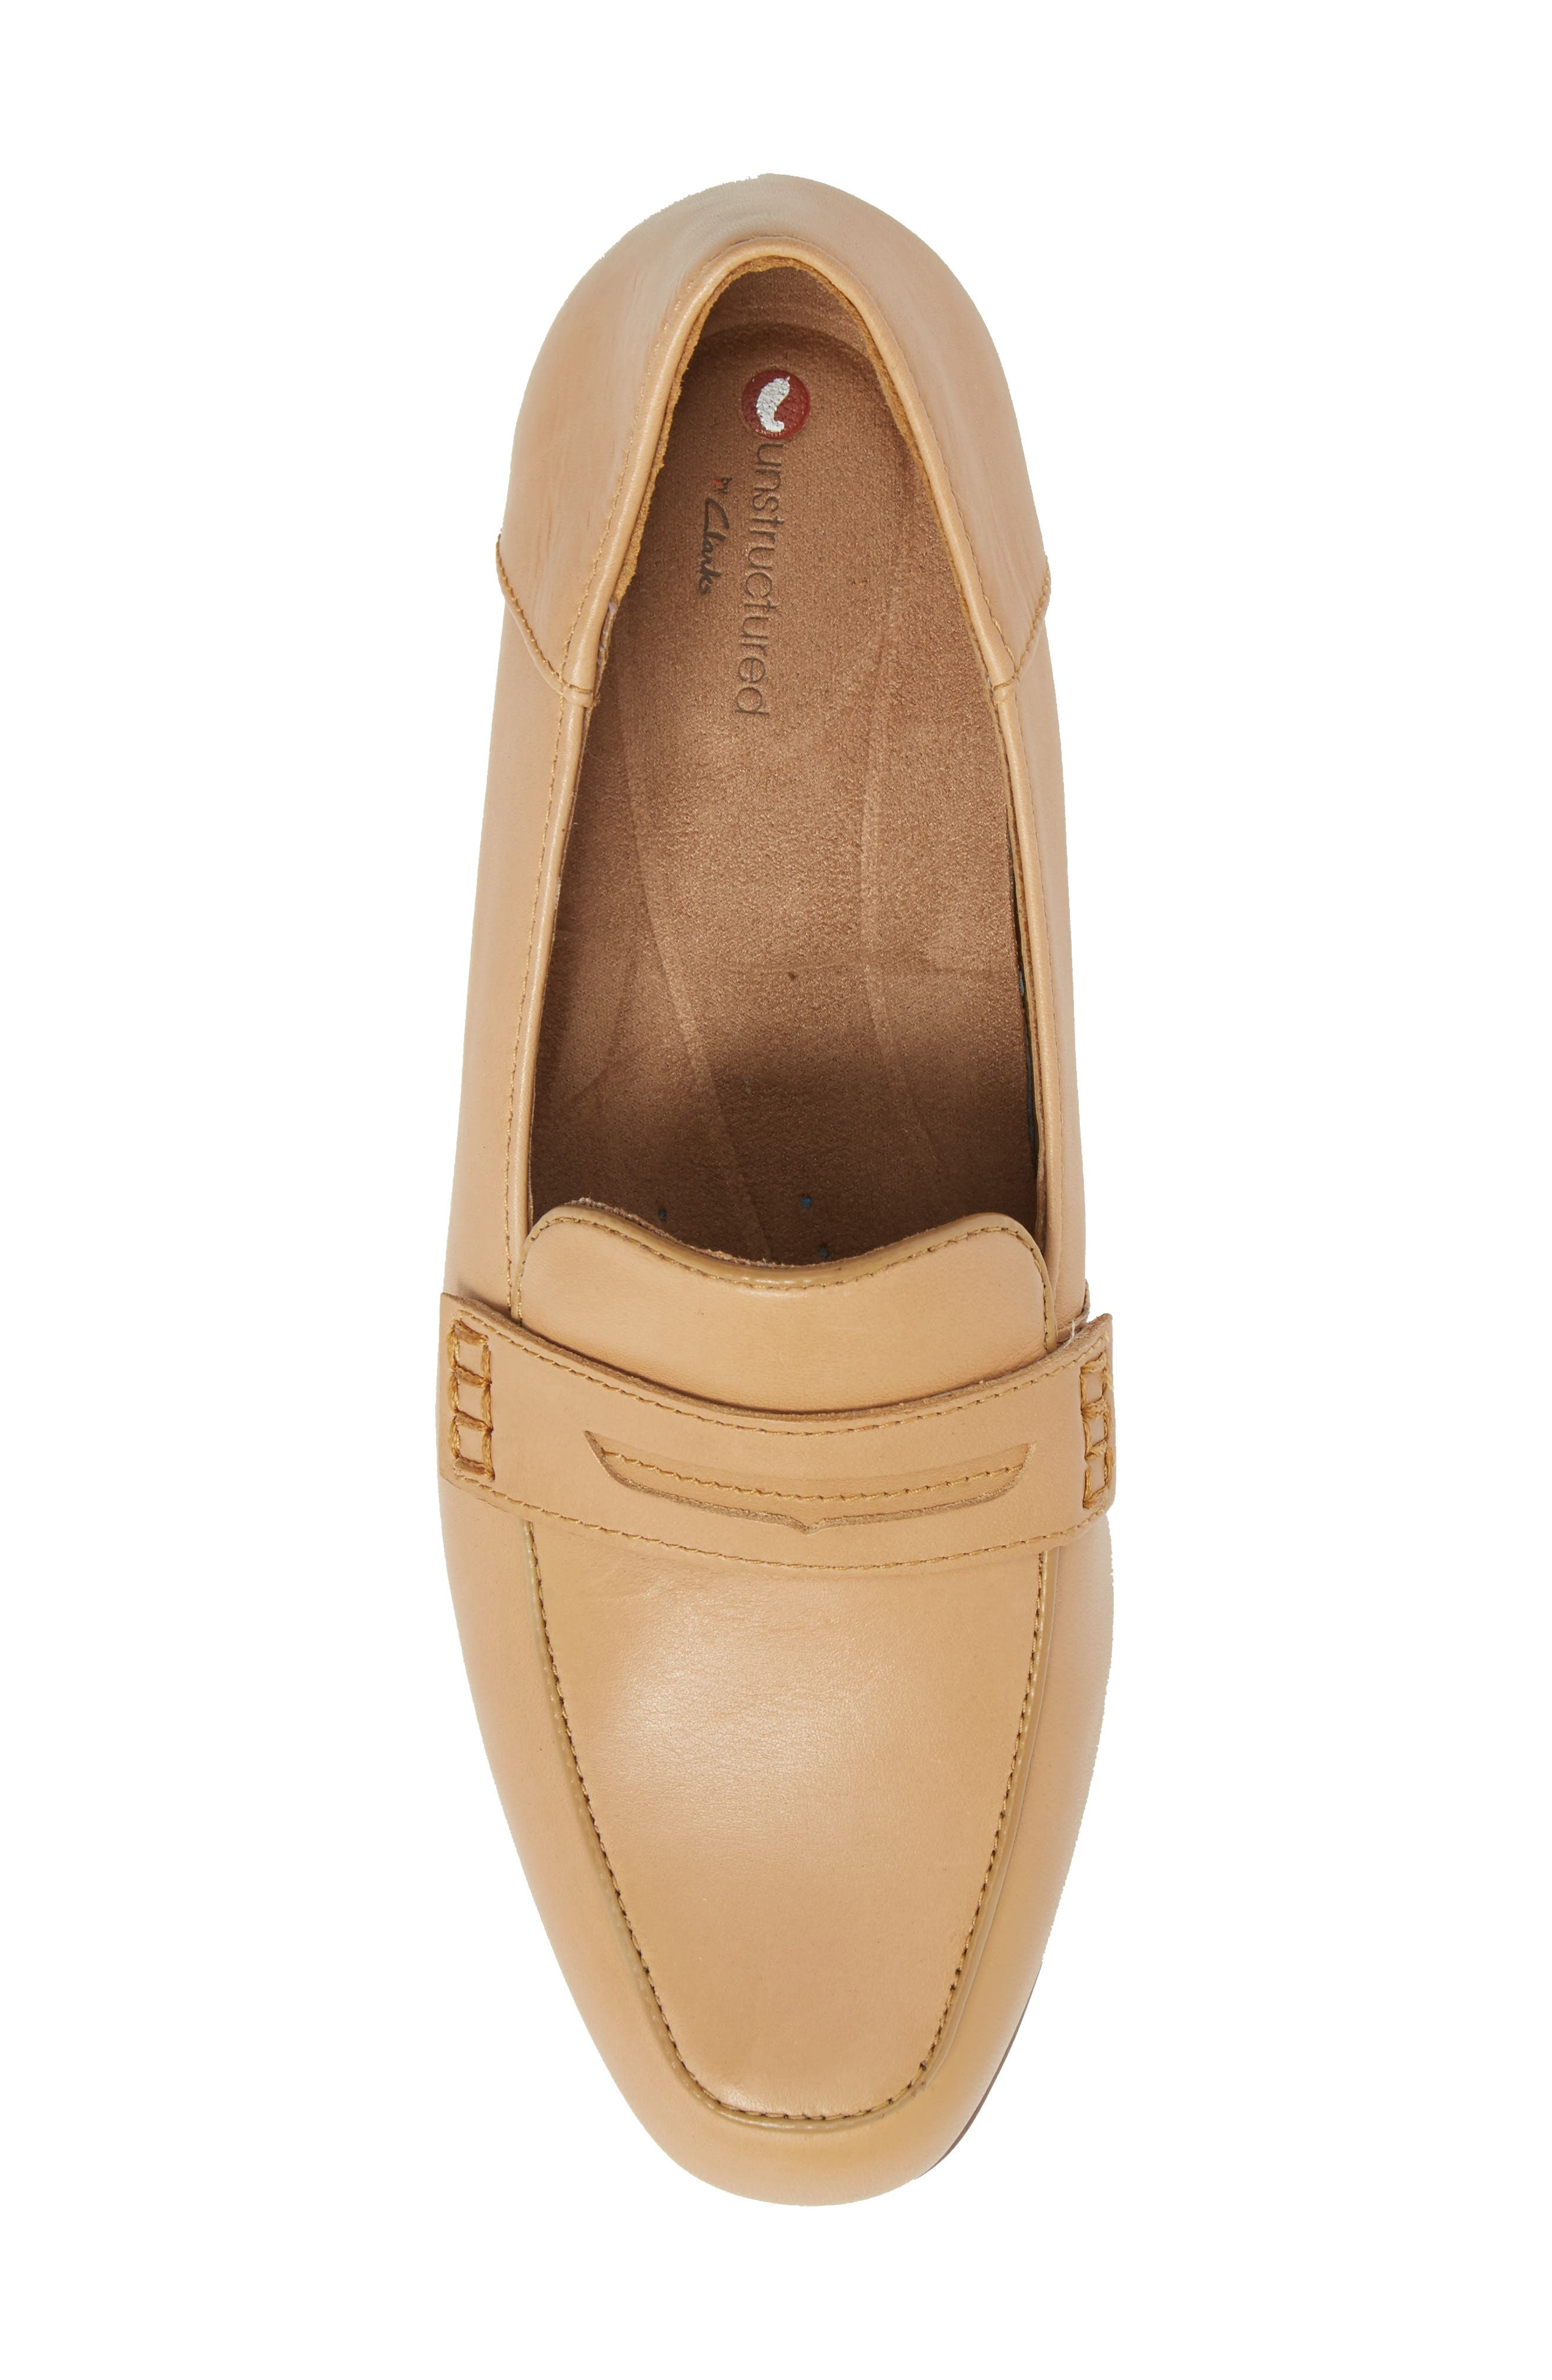 Keesha Cora Penny Loafer,                             Alternate thumbnail 5, color,                             Light Tan Leather